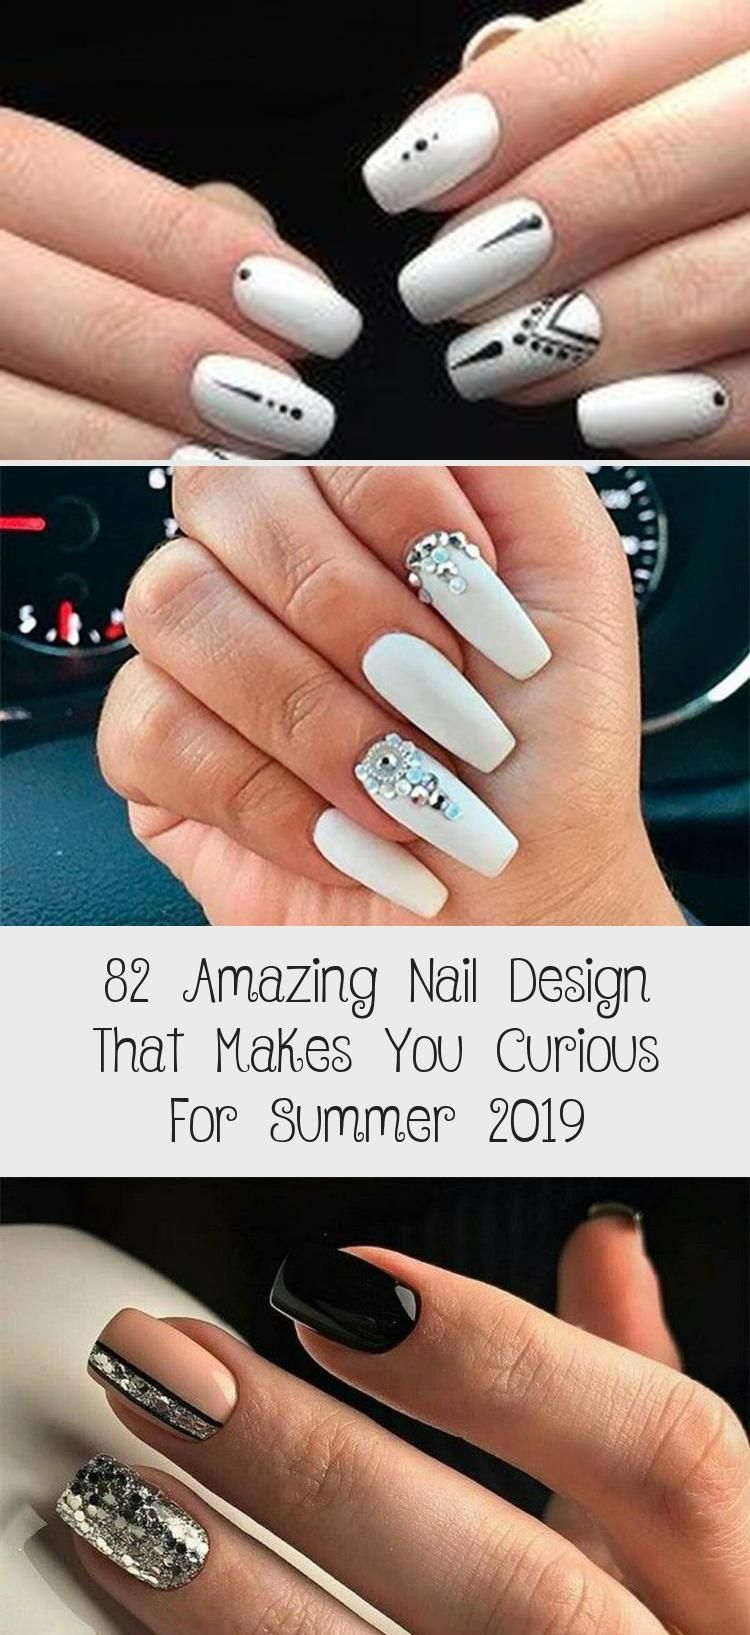 82 Amazing Nail Design That Makes You Curious For Summer 2019 – MAKEUP